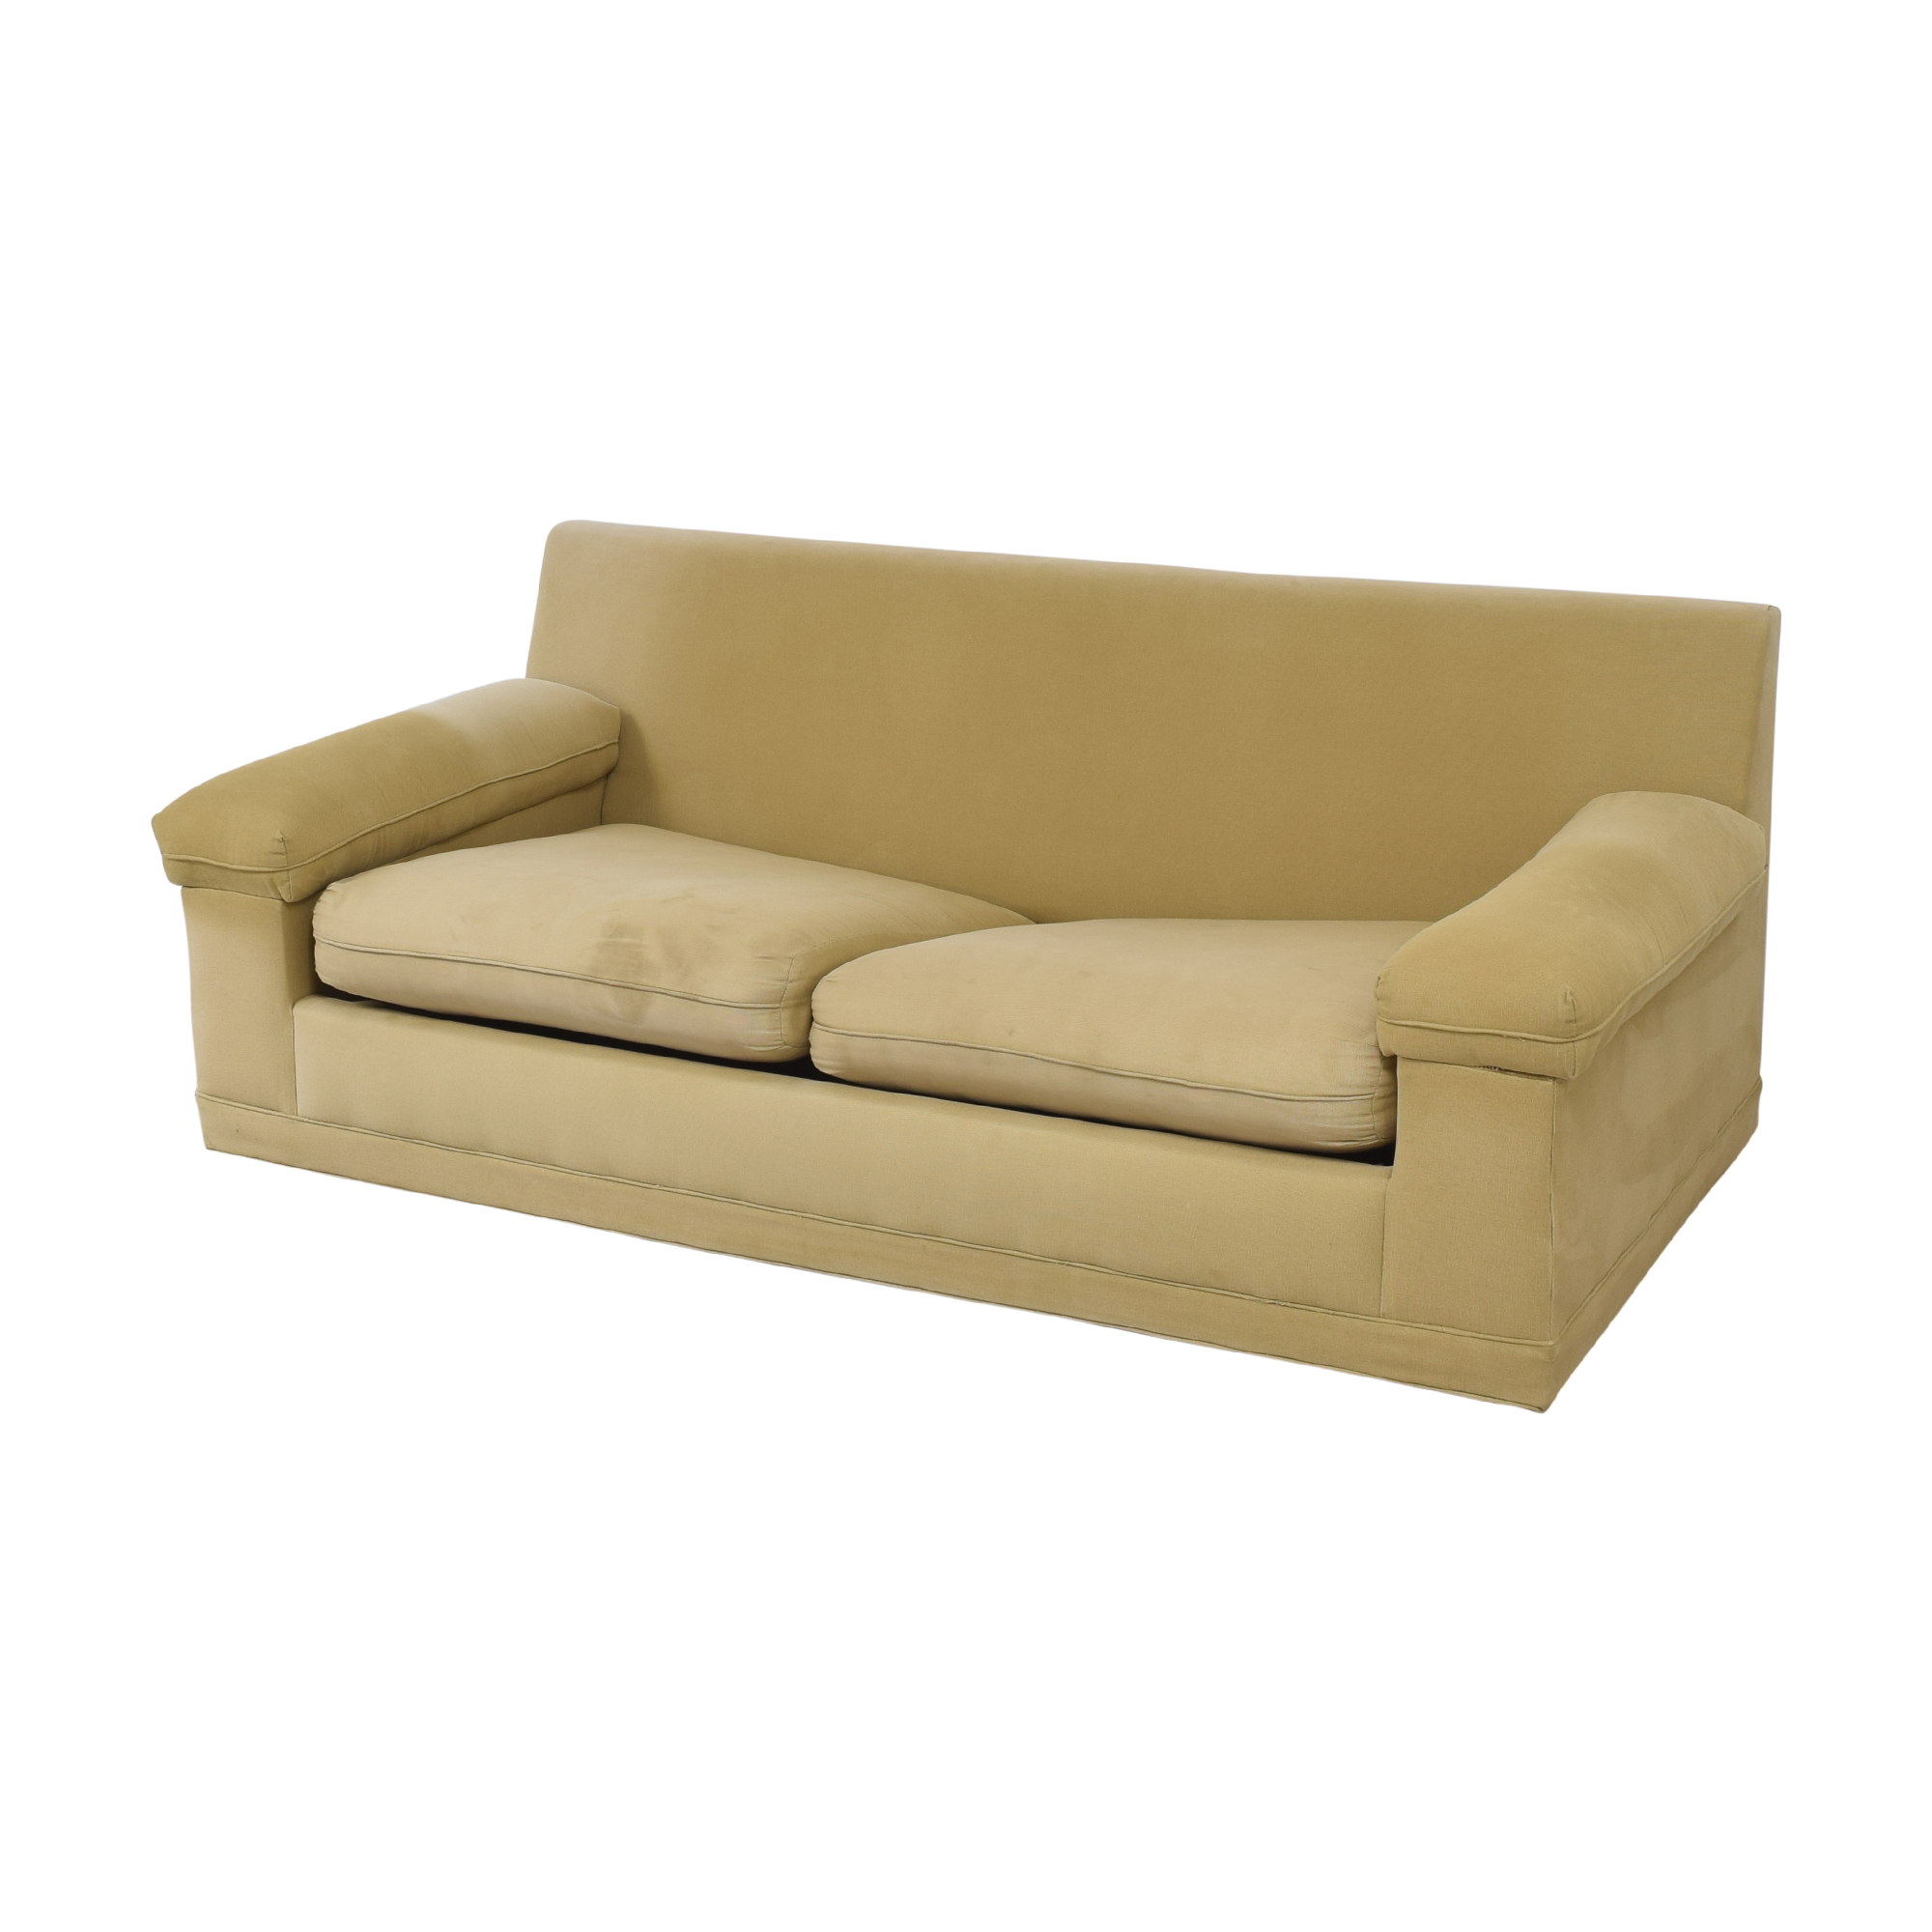 Cameo Collection Cameo Collection Two Seat Sleeper Sofa nyc